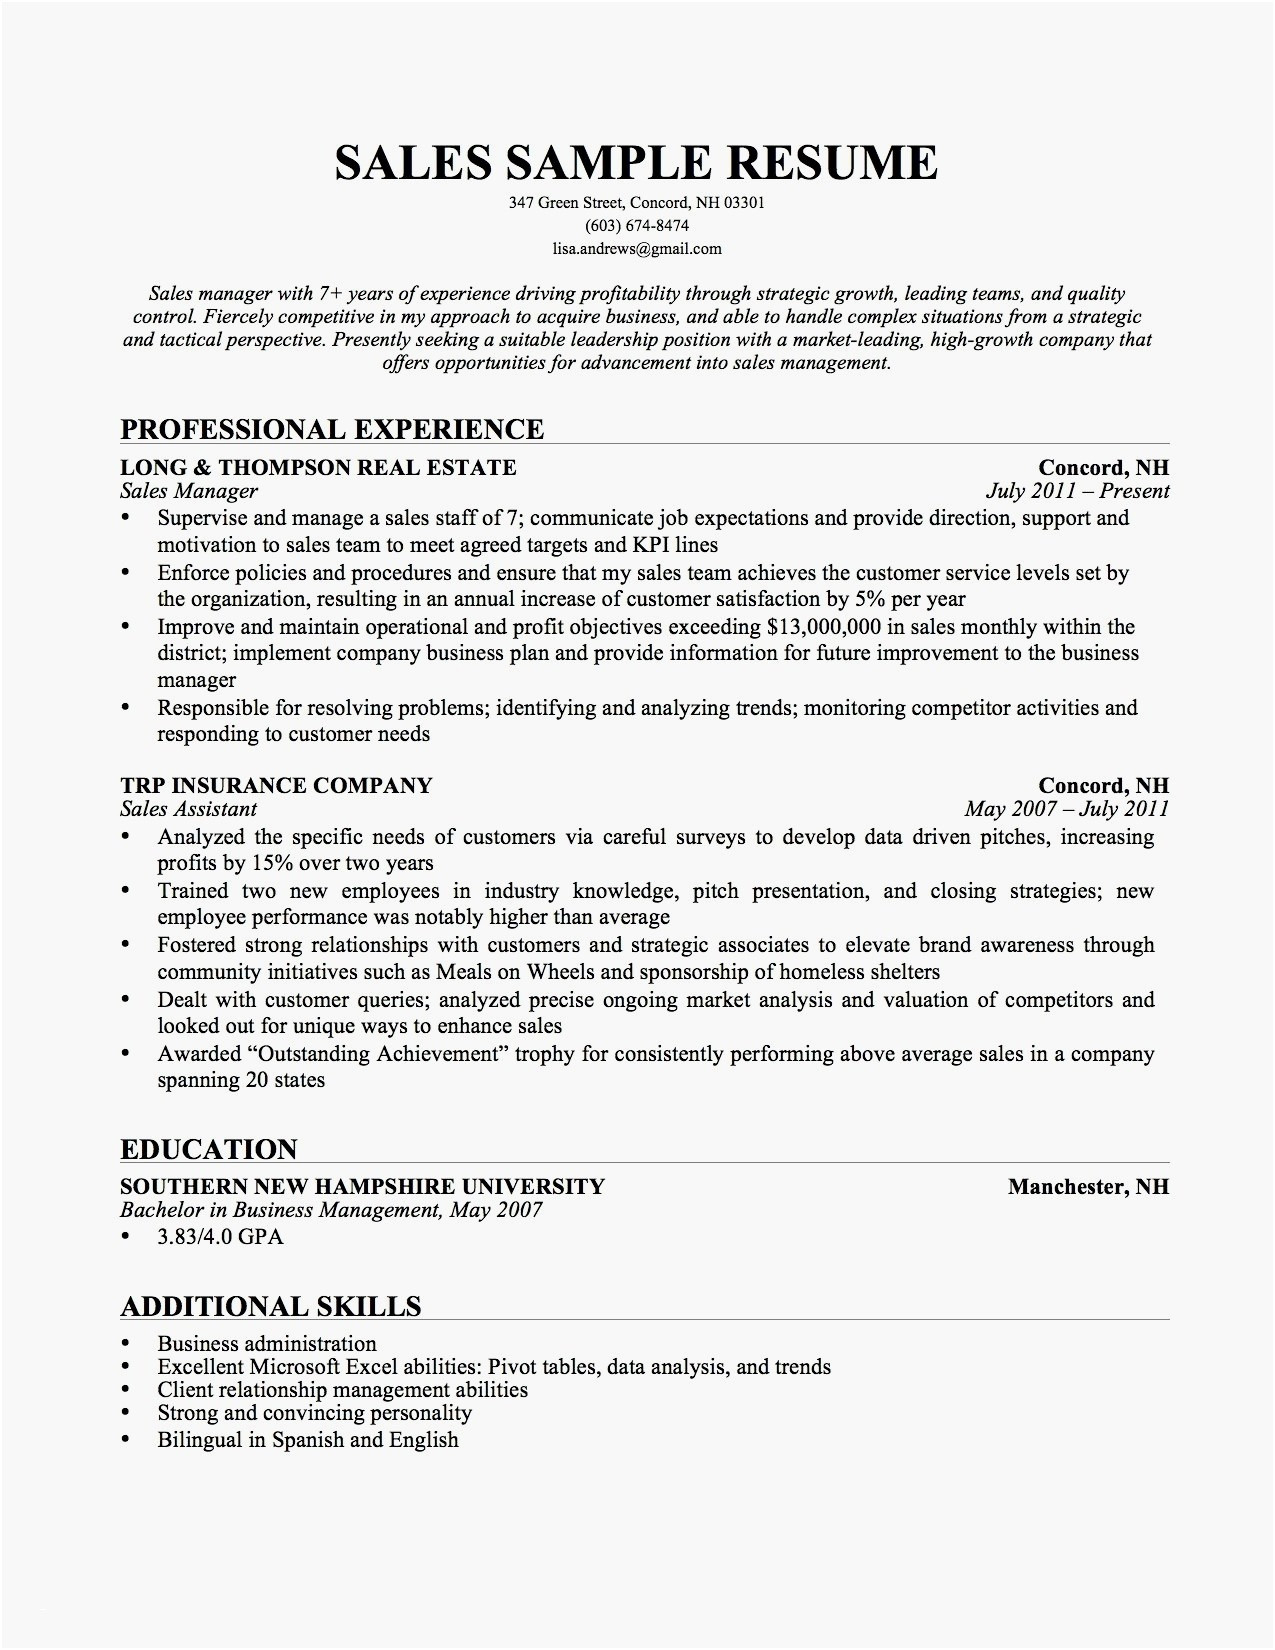 Resume for Summer Job - Summer Job Openings – Sample Job Resumes Luxury Examples Resumes